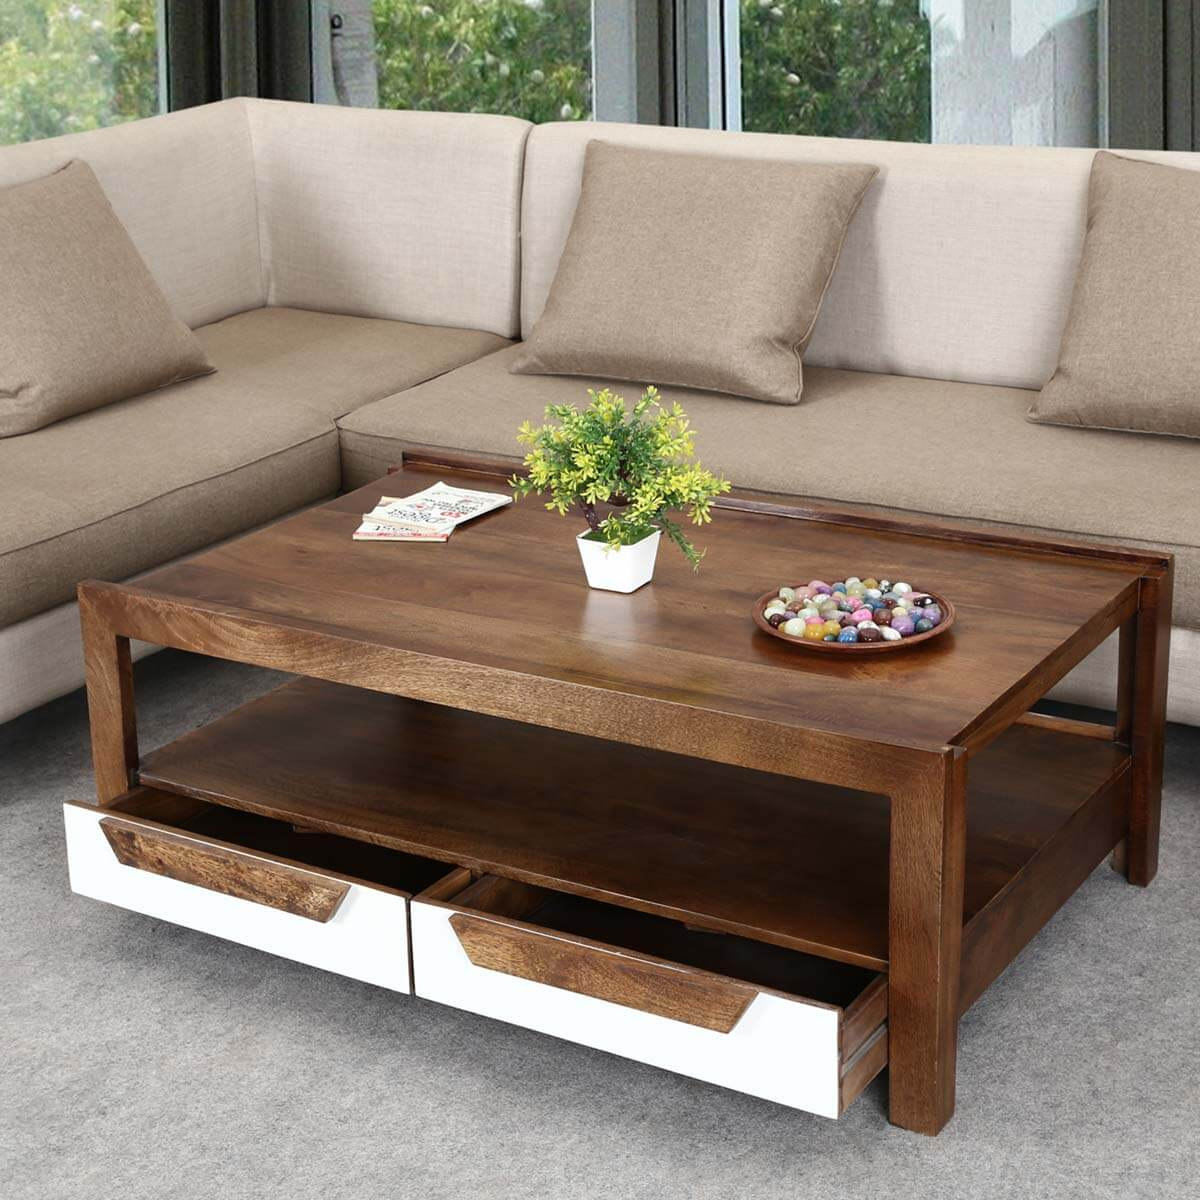 Retro Sofa Wood 60 S Retro Mango Wood 2 Tier Raised Edge Coffee Table W Drawers